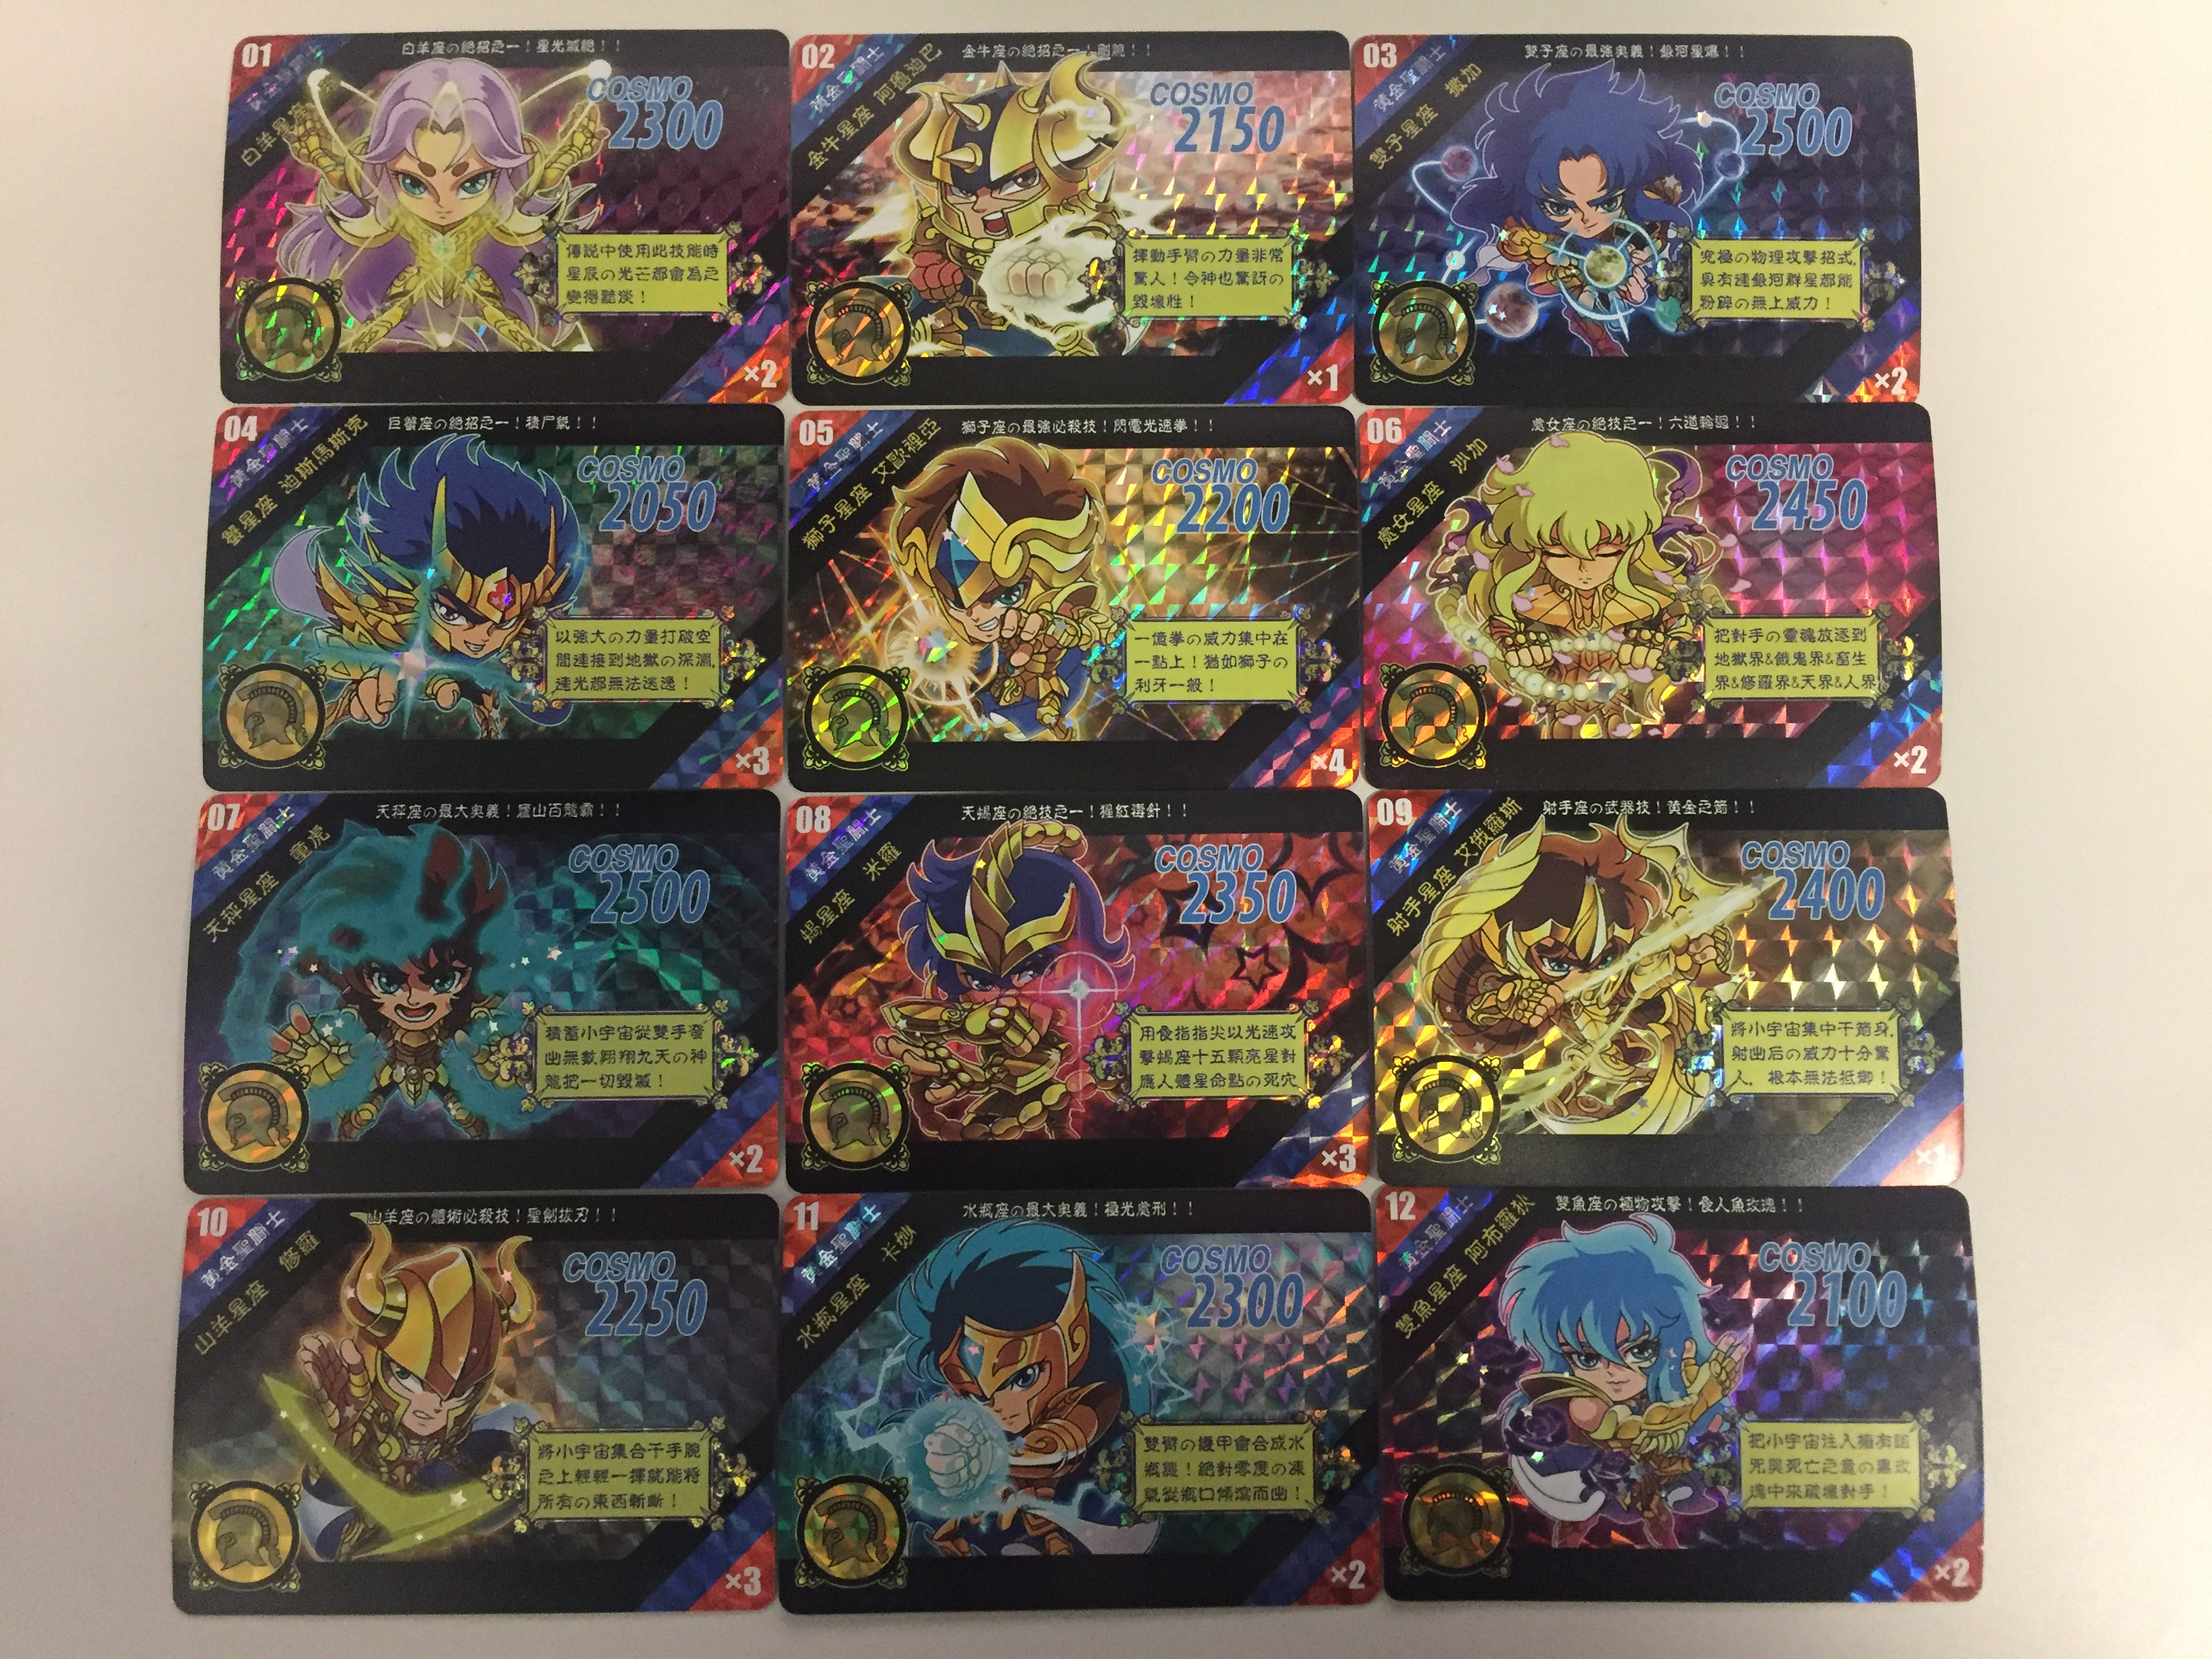 12pcs/set Saint Seiya Gold Saint Q Version Awakening Flash Card Toys Hobbies Hobby Collectibles Game Collection Cards